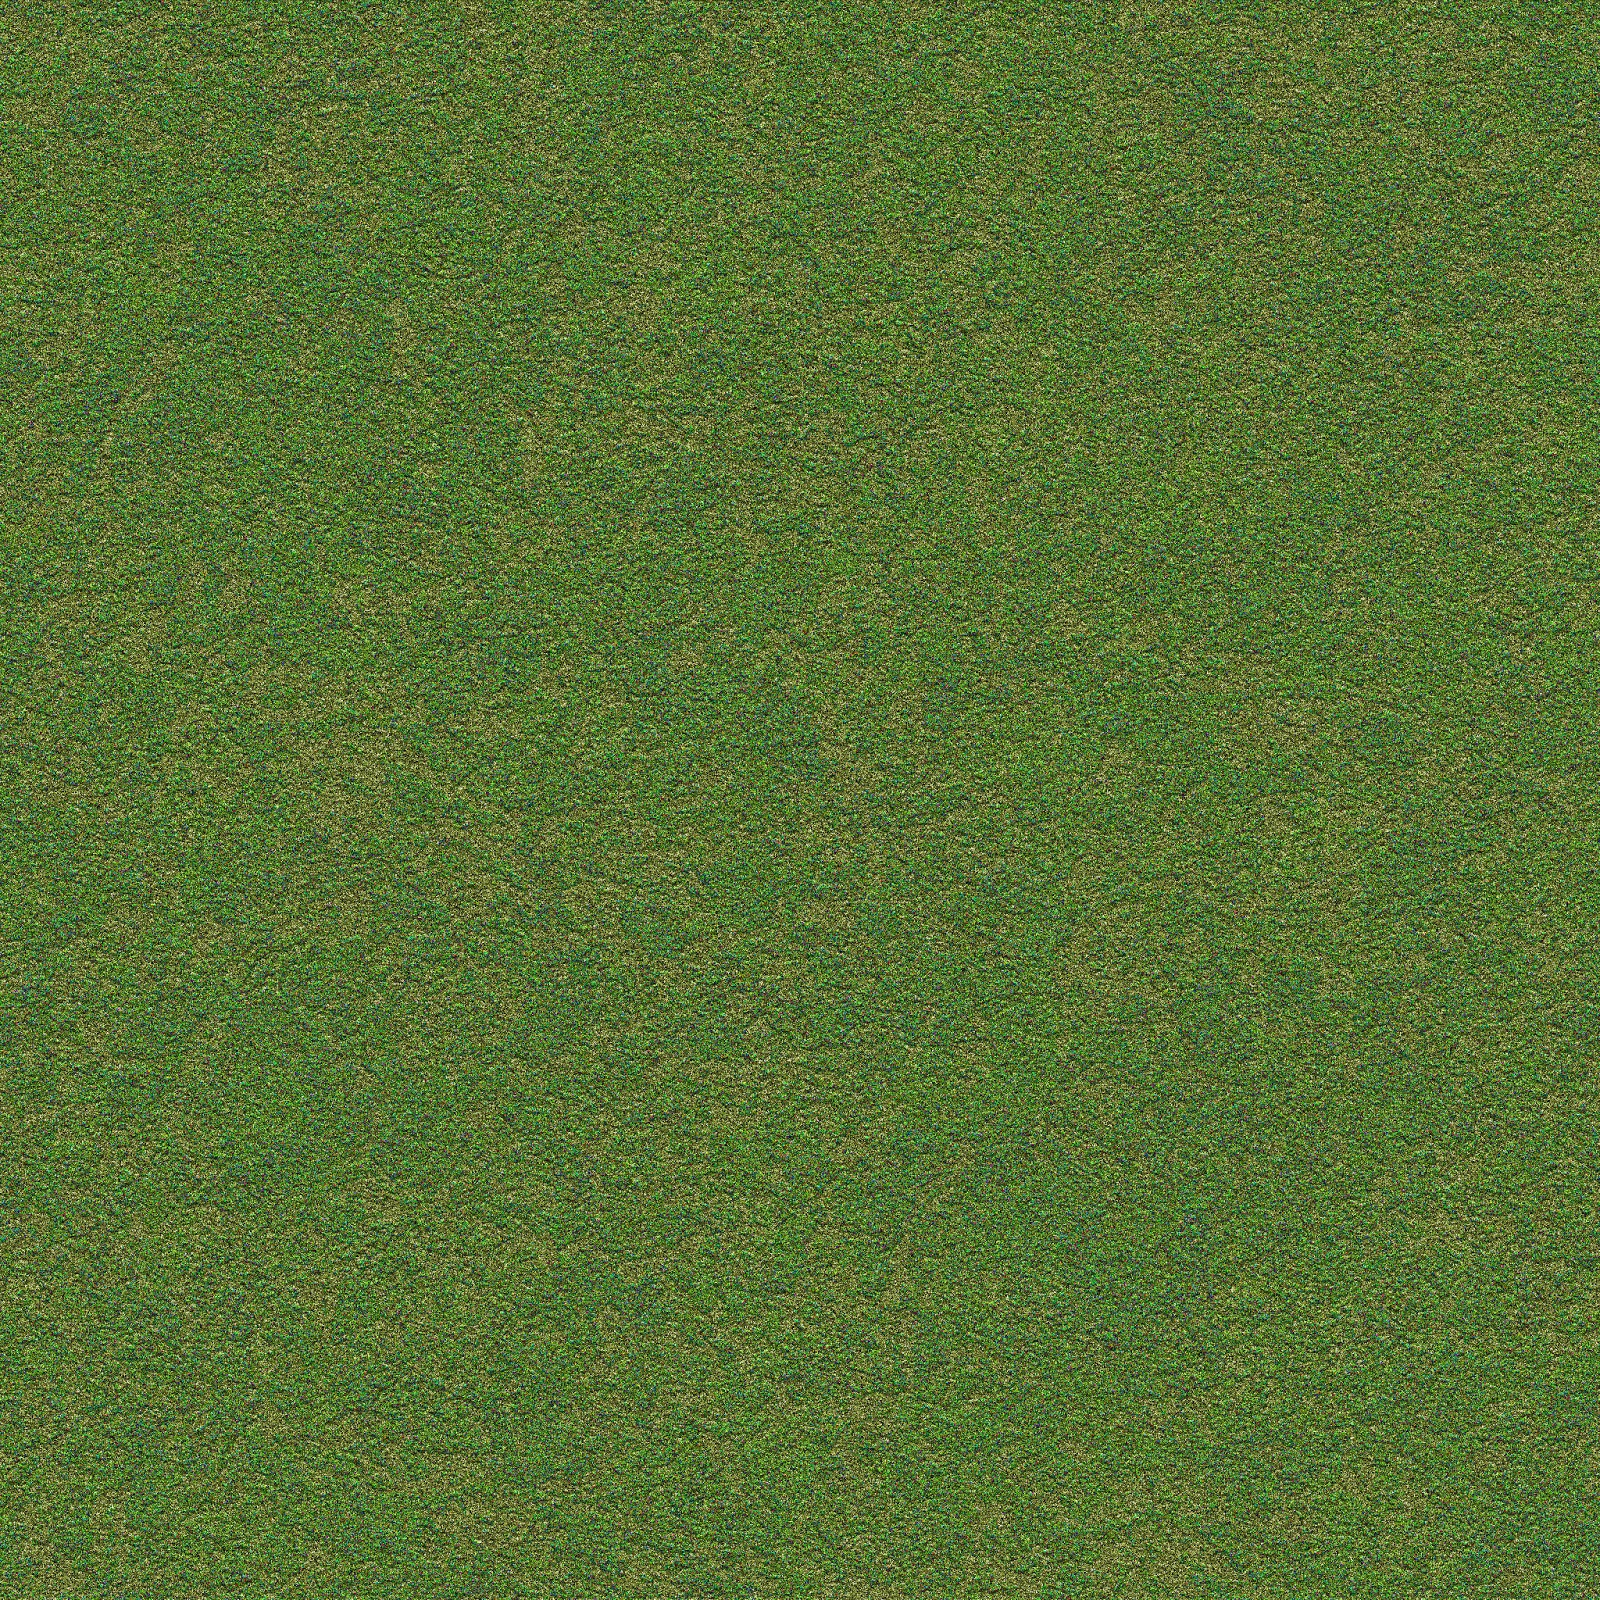 Dark_Green_grass_ground_land_dirt_aerial_top_seamless_texture